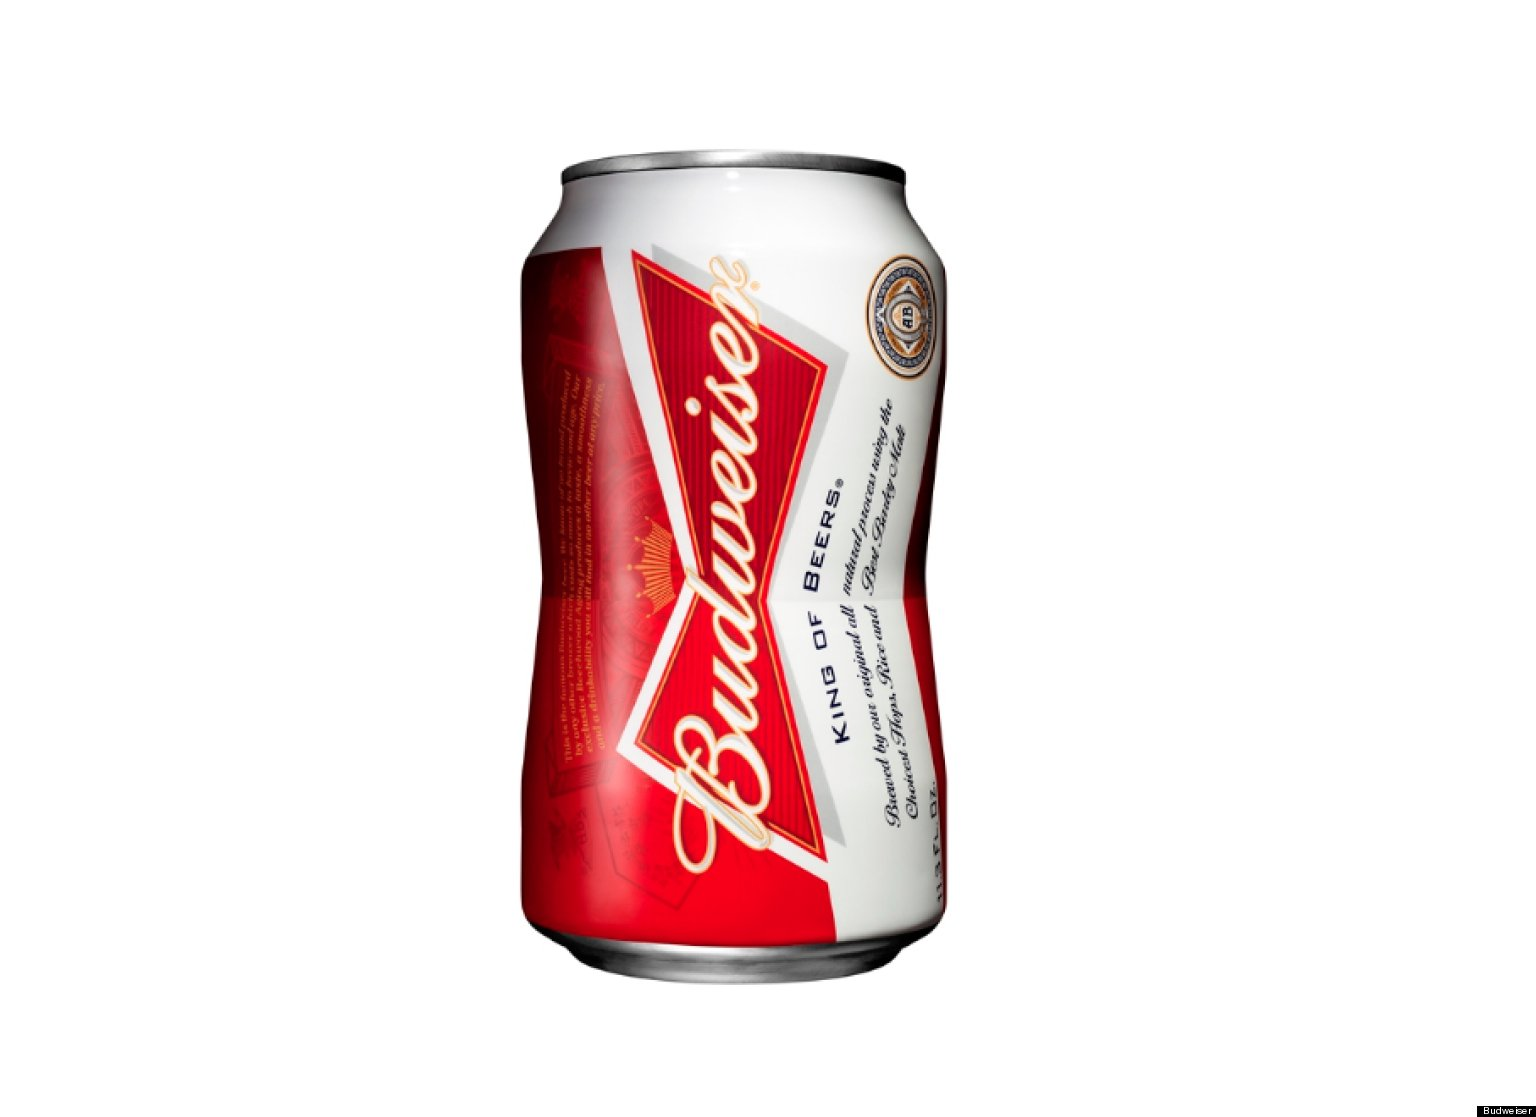 Budweiser bow tie can to debut on may 6 photos huffpost - Budweiser beer pictures ...